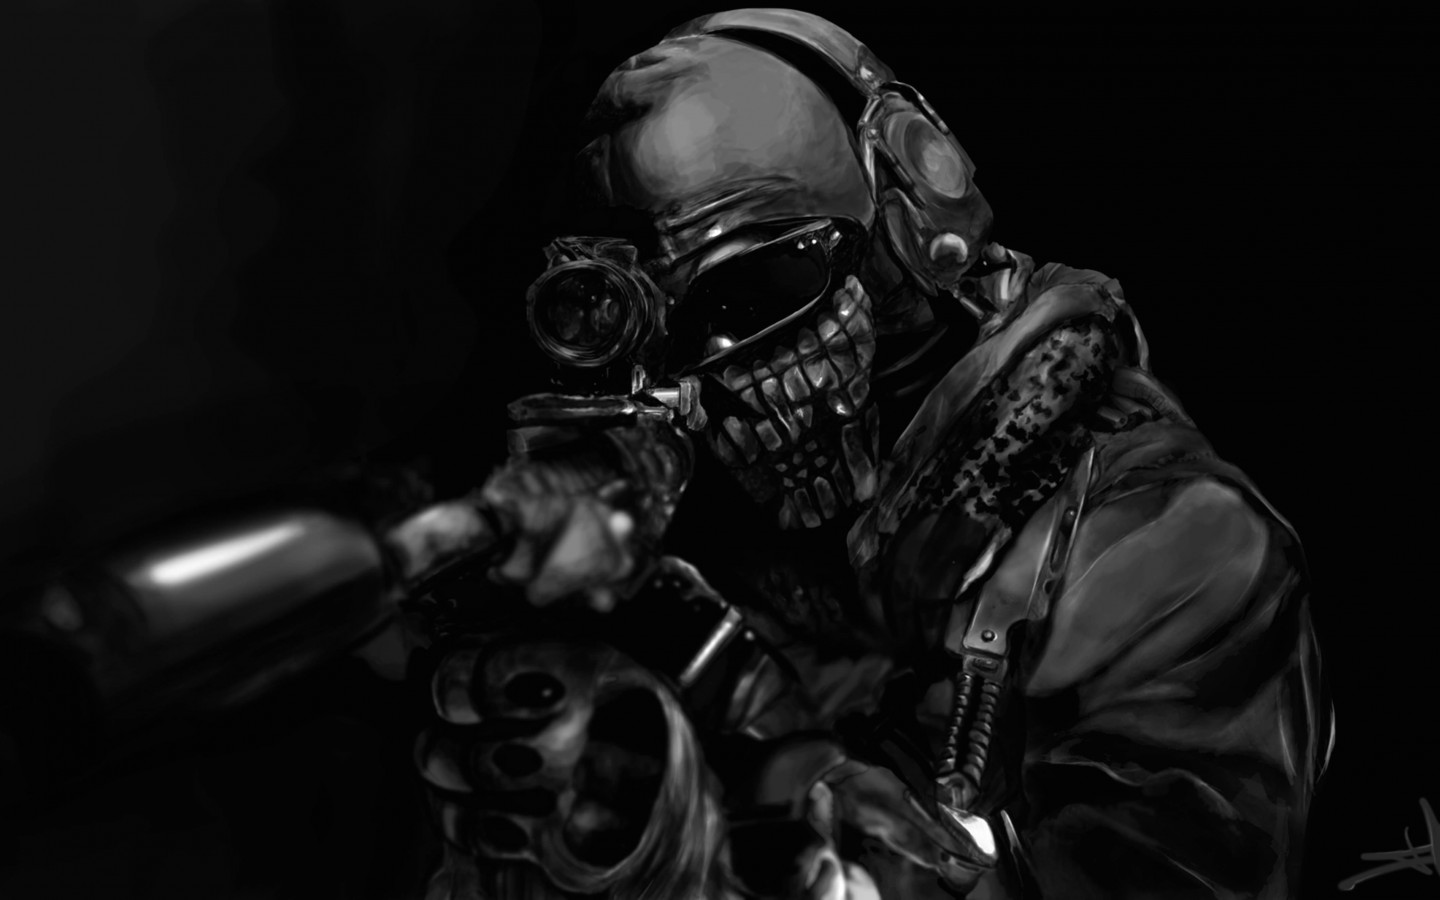 Call of Duty Ghost Masked Warrior Wallpaper for Desktop 1440x900